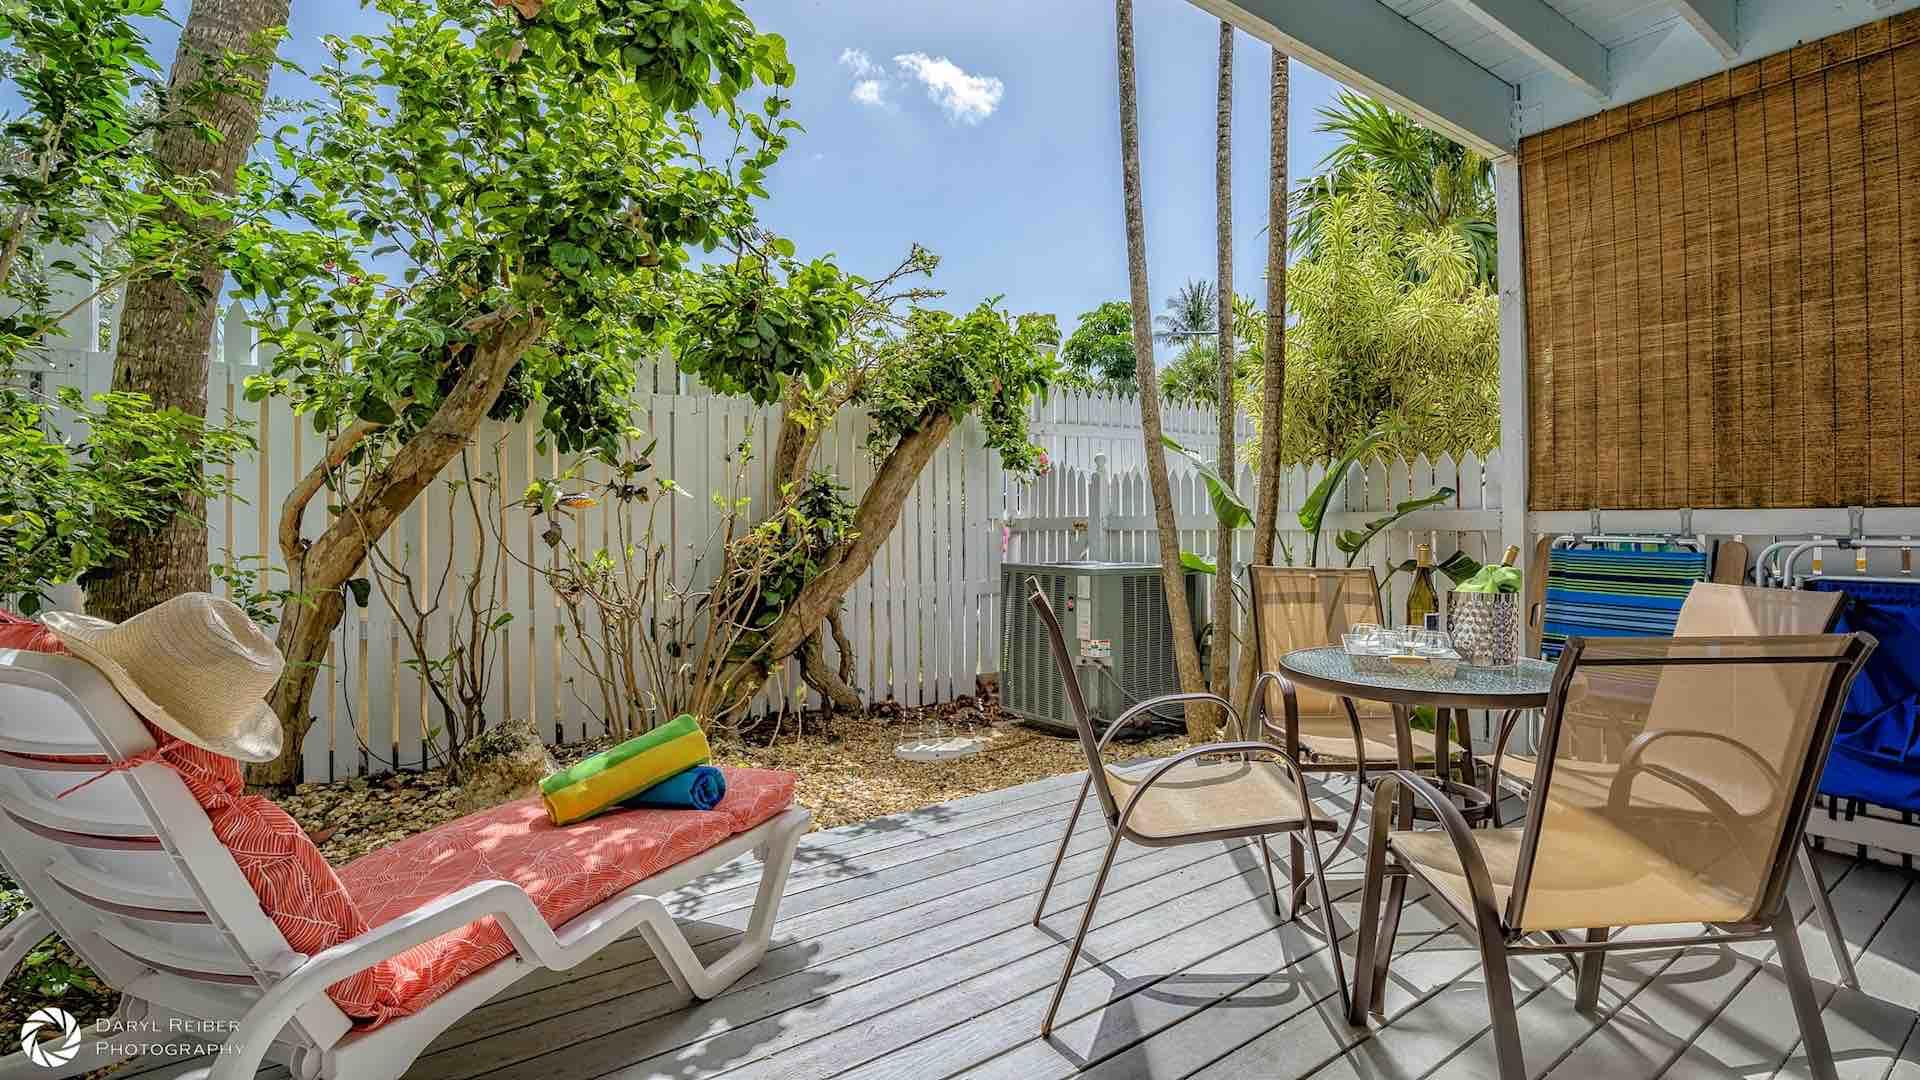 The back deck is fenced in to provide complete privacy...